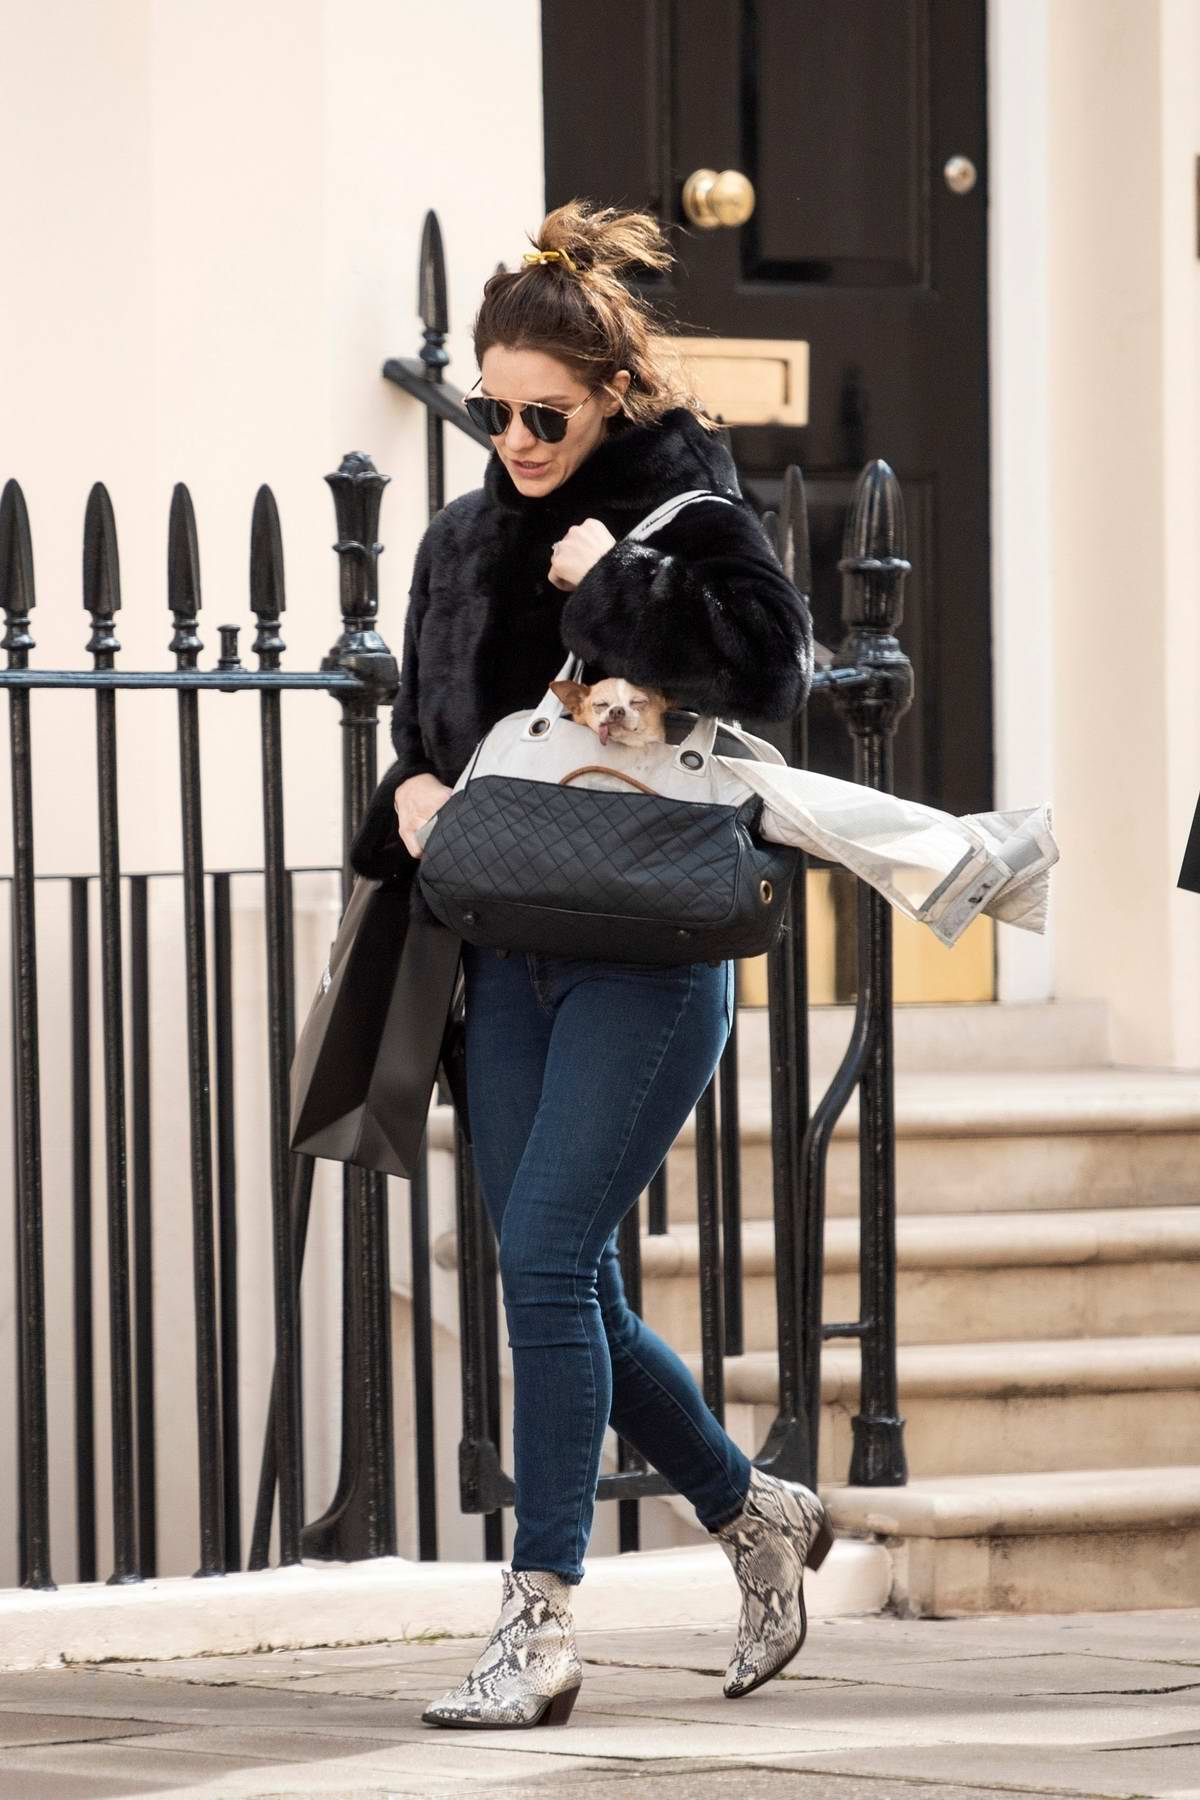 Katharine McPhee wore a black fur coat, jeans and snakeskin boots during a day of shopping in London, UK